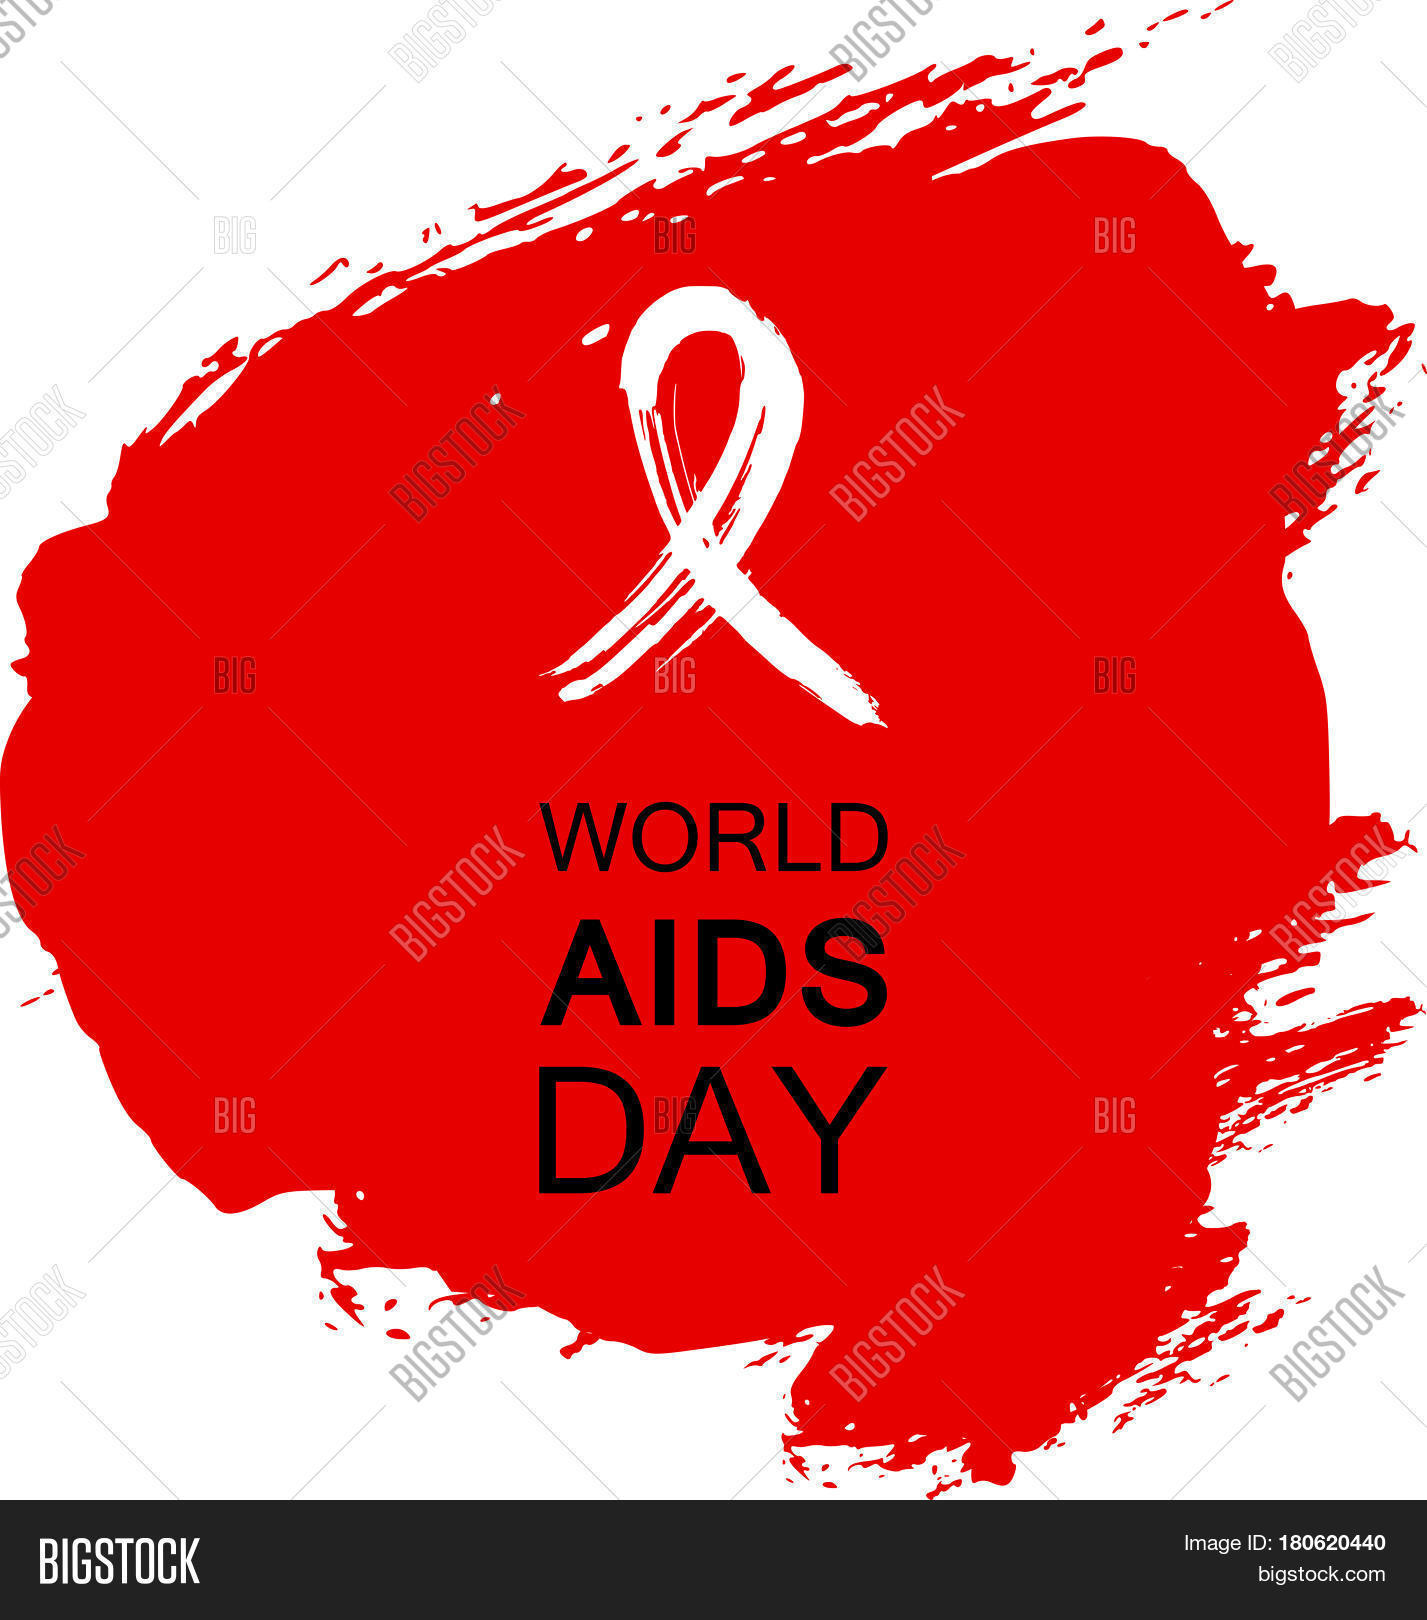 world aids day backgrounds - photo #36